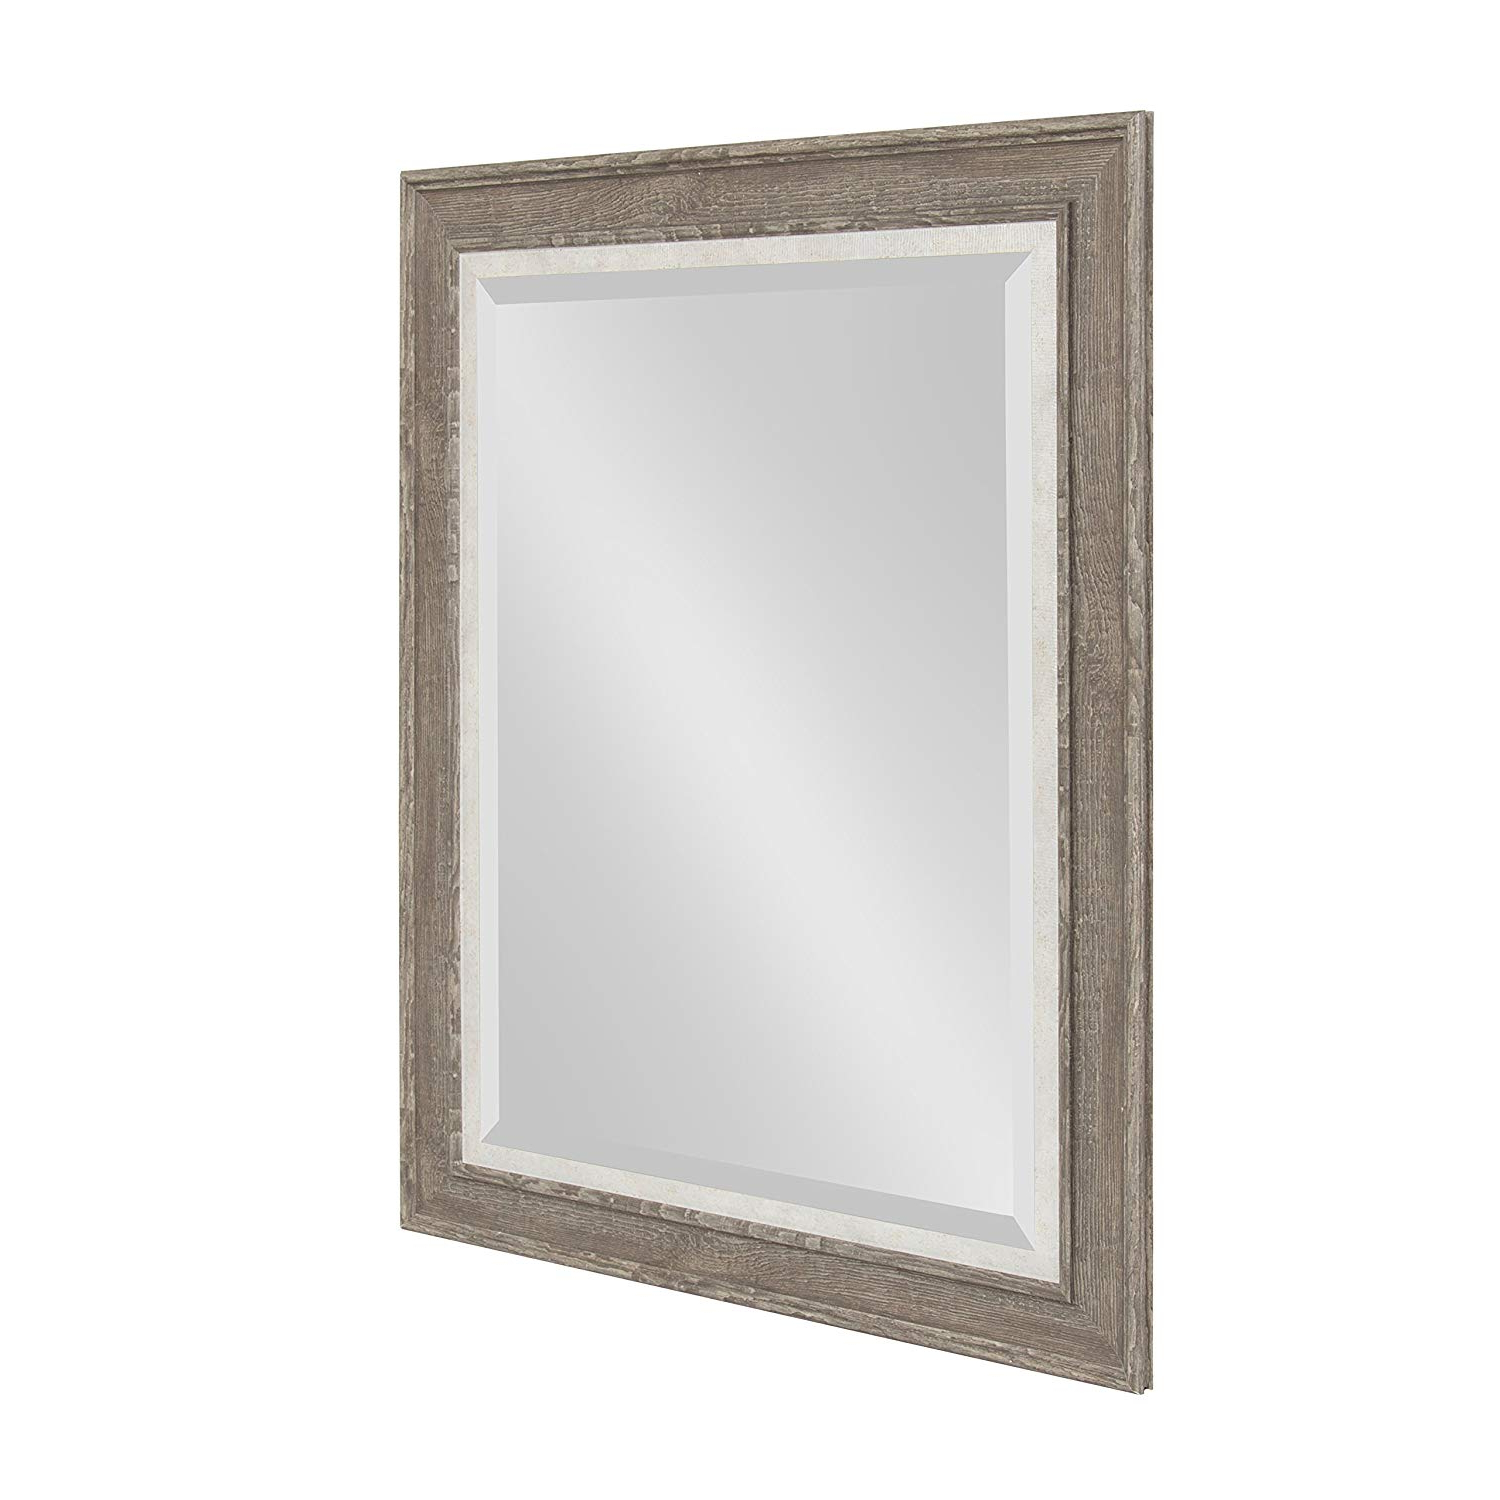 Preferred Kate And Laurel Woodway Framed Wall Mirror, 23.5x (View 10 of 20)